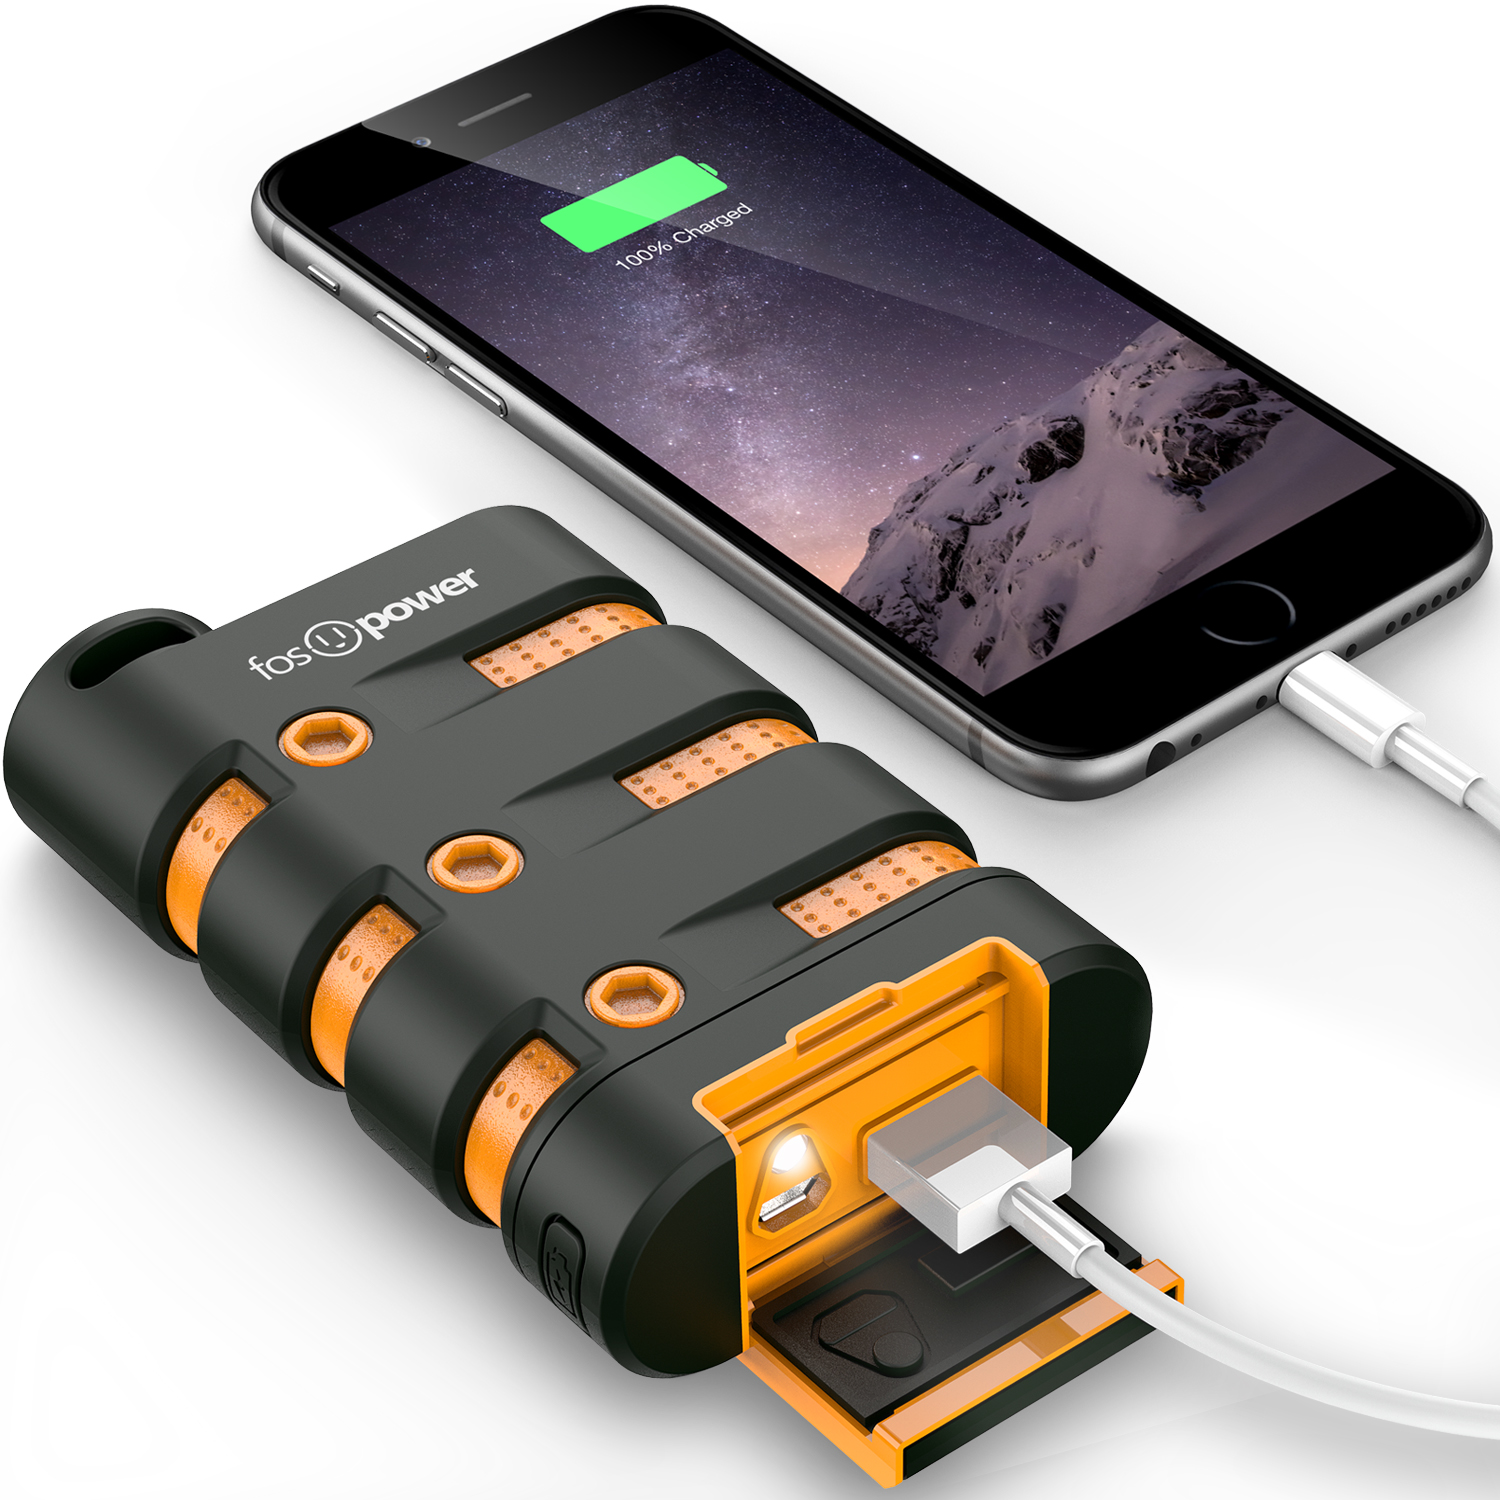 FosPower PowerActive 10200 mAh Power Bank - 2.1A USB Output [Water/Shock/Dust Proof] Rugged Heavy Duty Portable Battery Charger for iPhone/iPad, Android Smartphones, Tablets & MP3, Pokemon Go